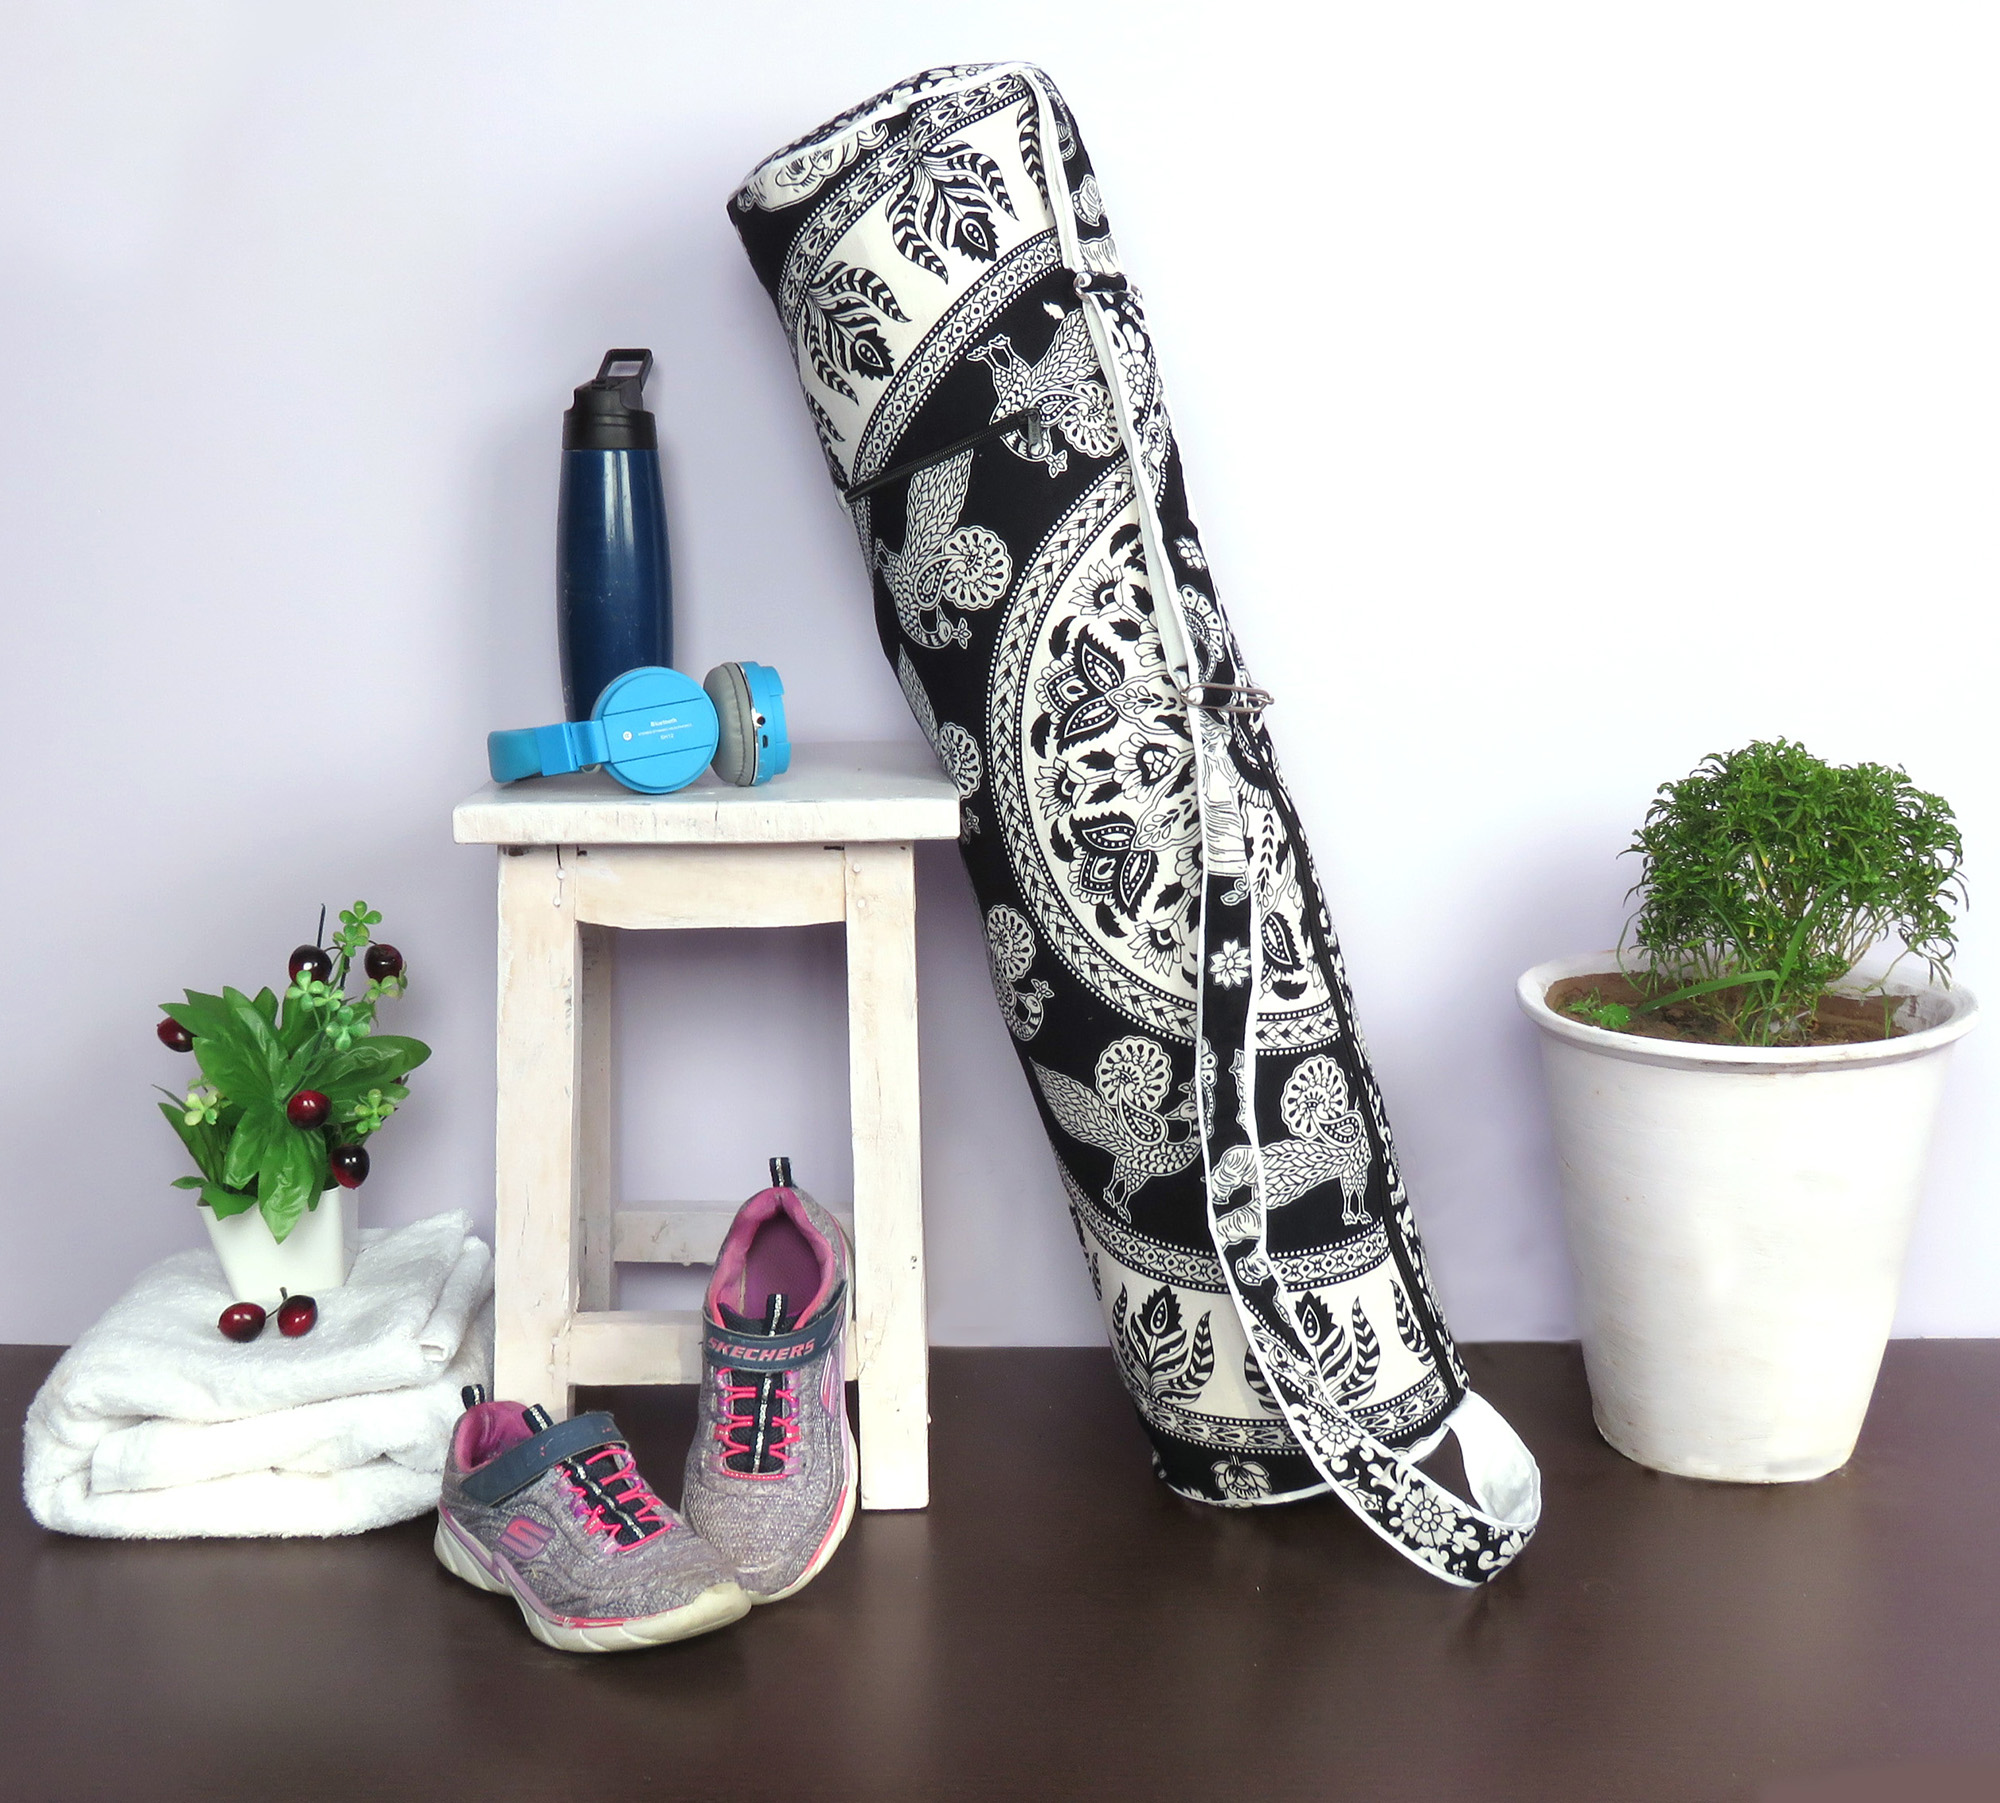 Black and White Yoga Mat Crrying Bag Boho Mandala Yoga Mat Bags for Fintess Session Yoga Bag Sling Strap with Zip Pockets Online by Goood Times